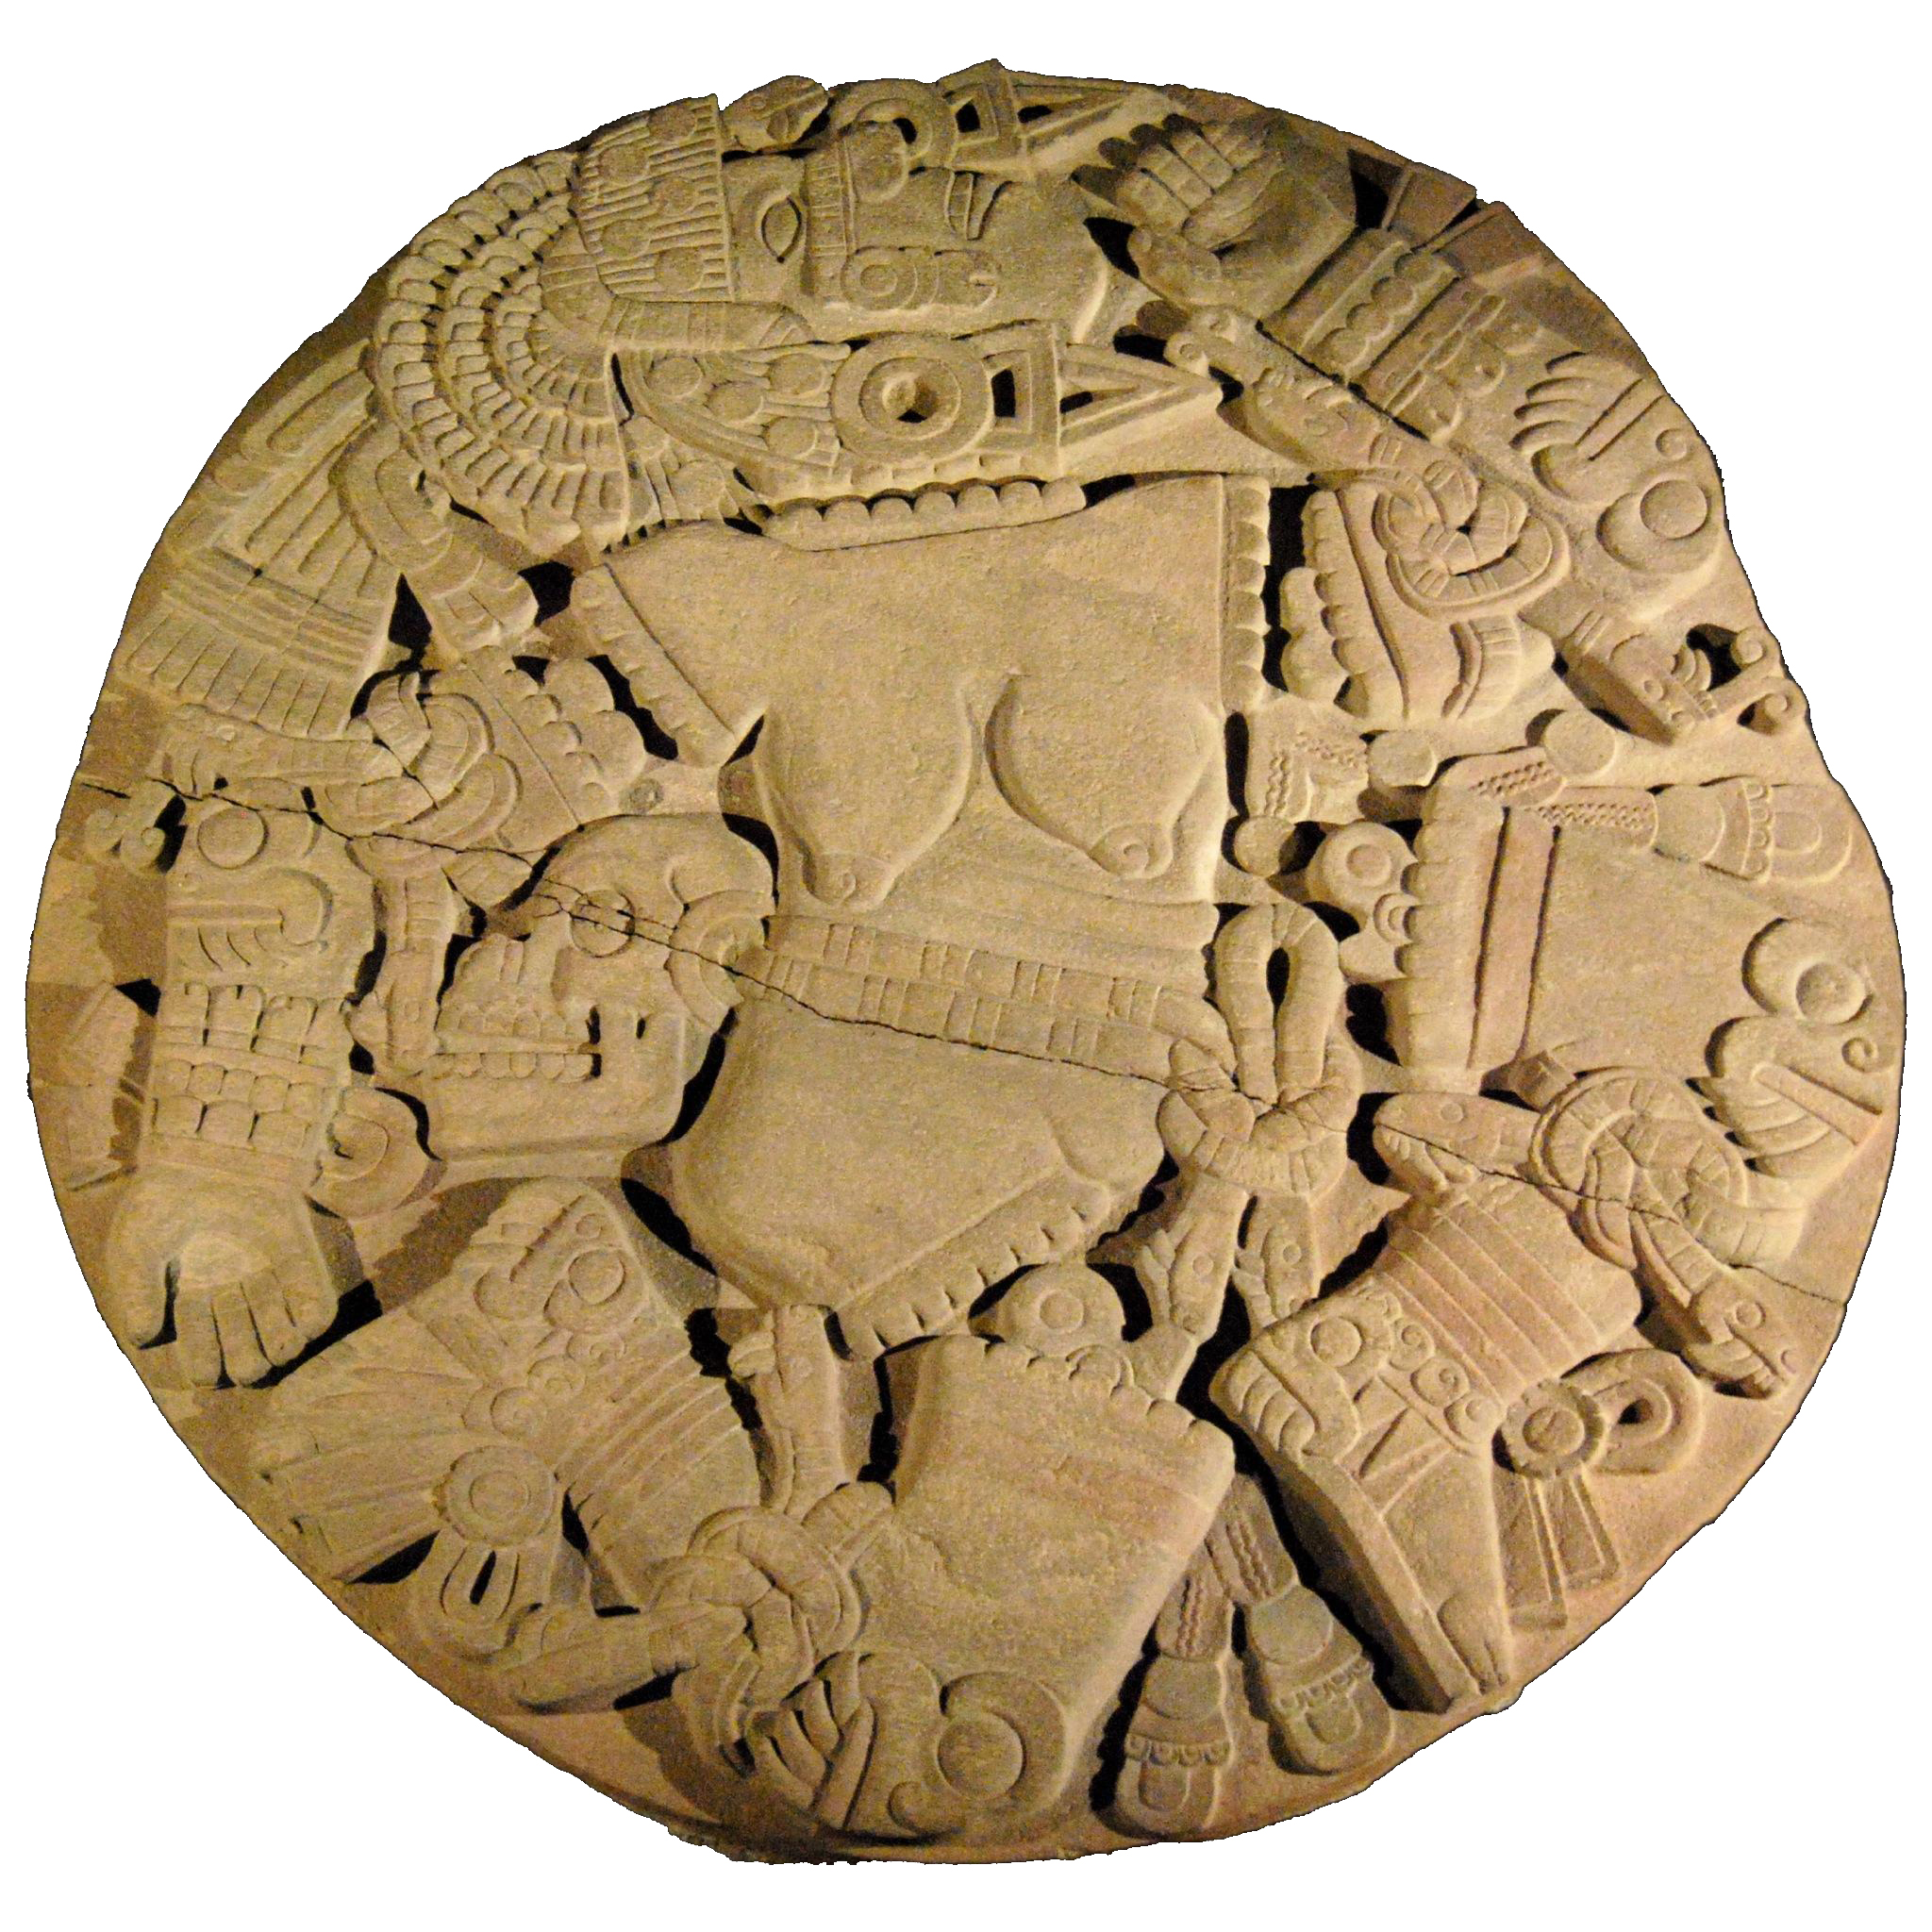 Azteque Coyolxauhqui disc from the Templo del Mayor in Mexico City